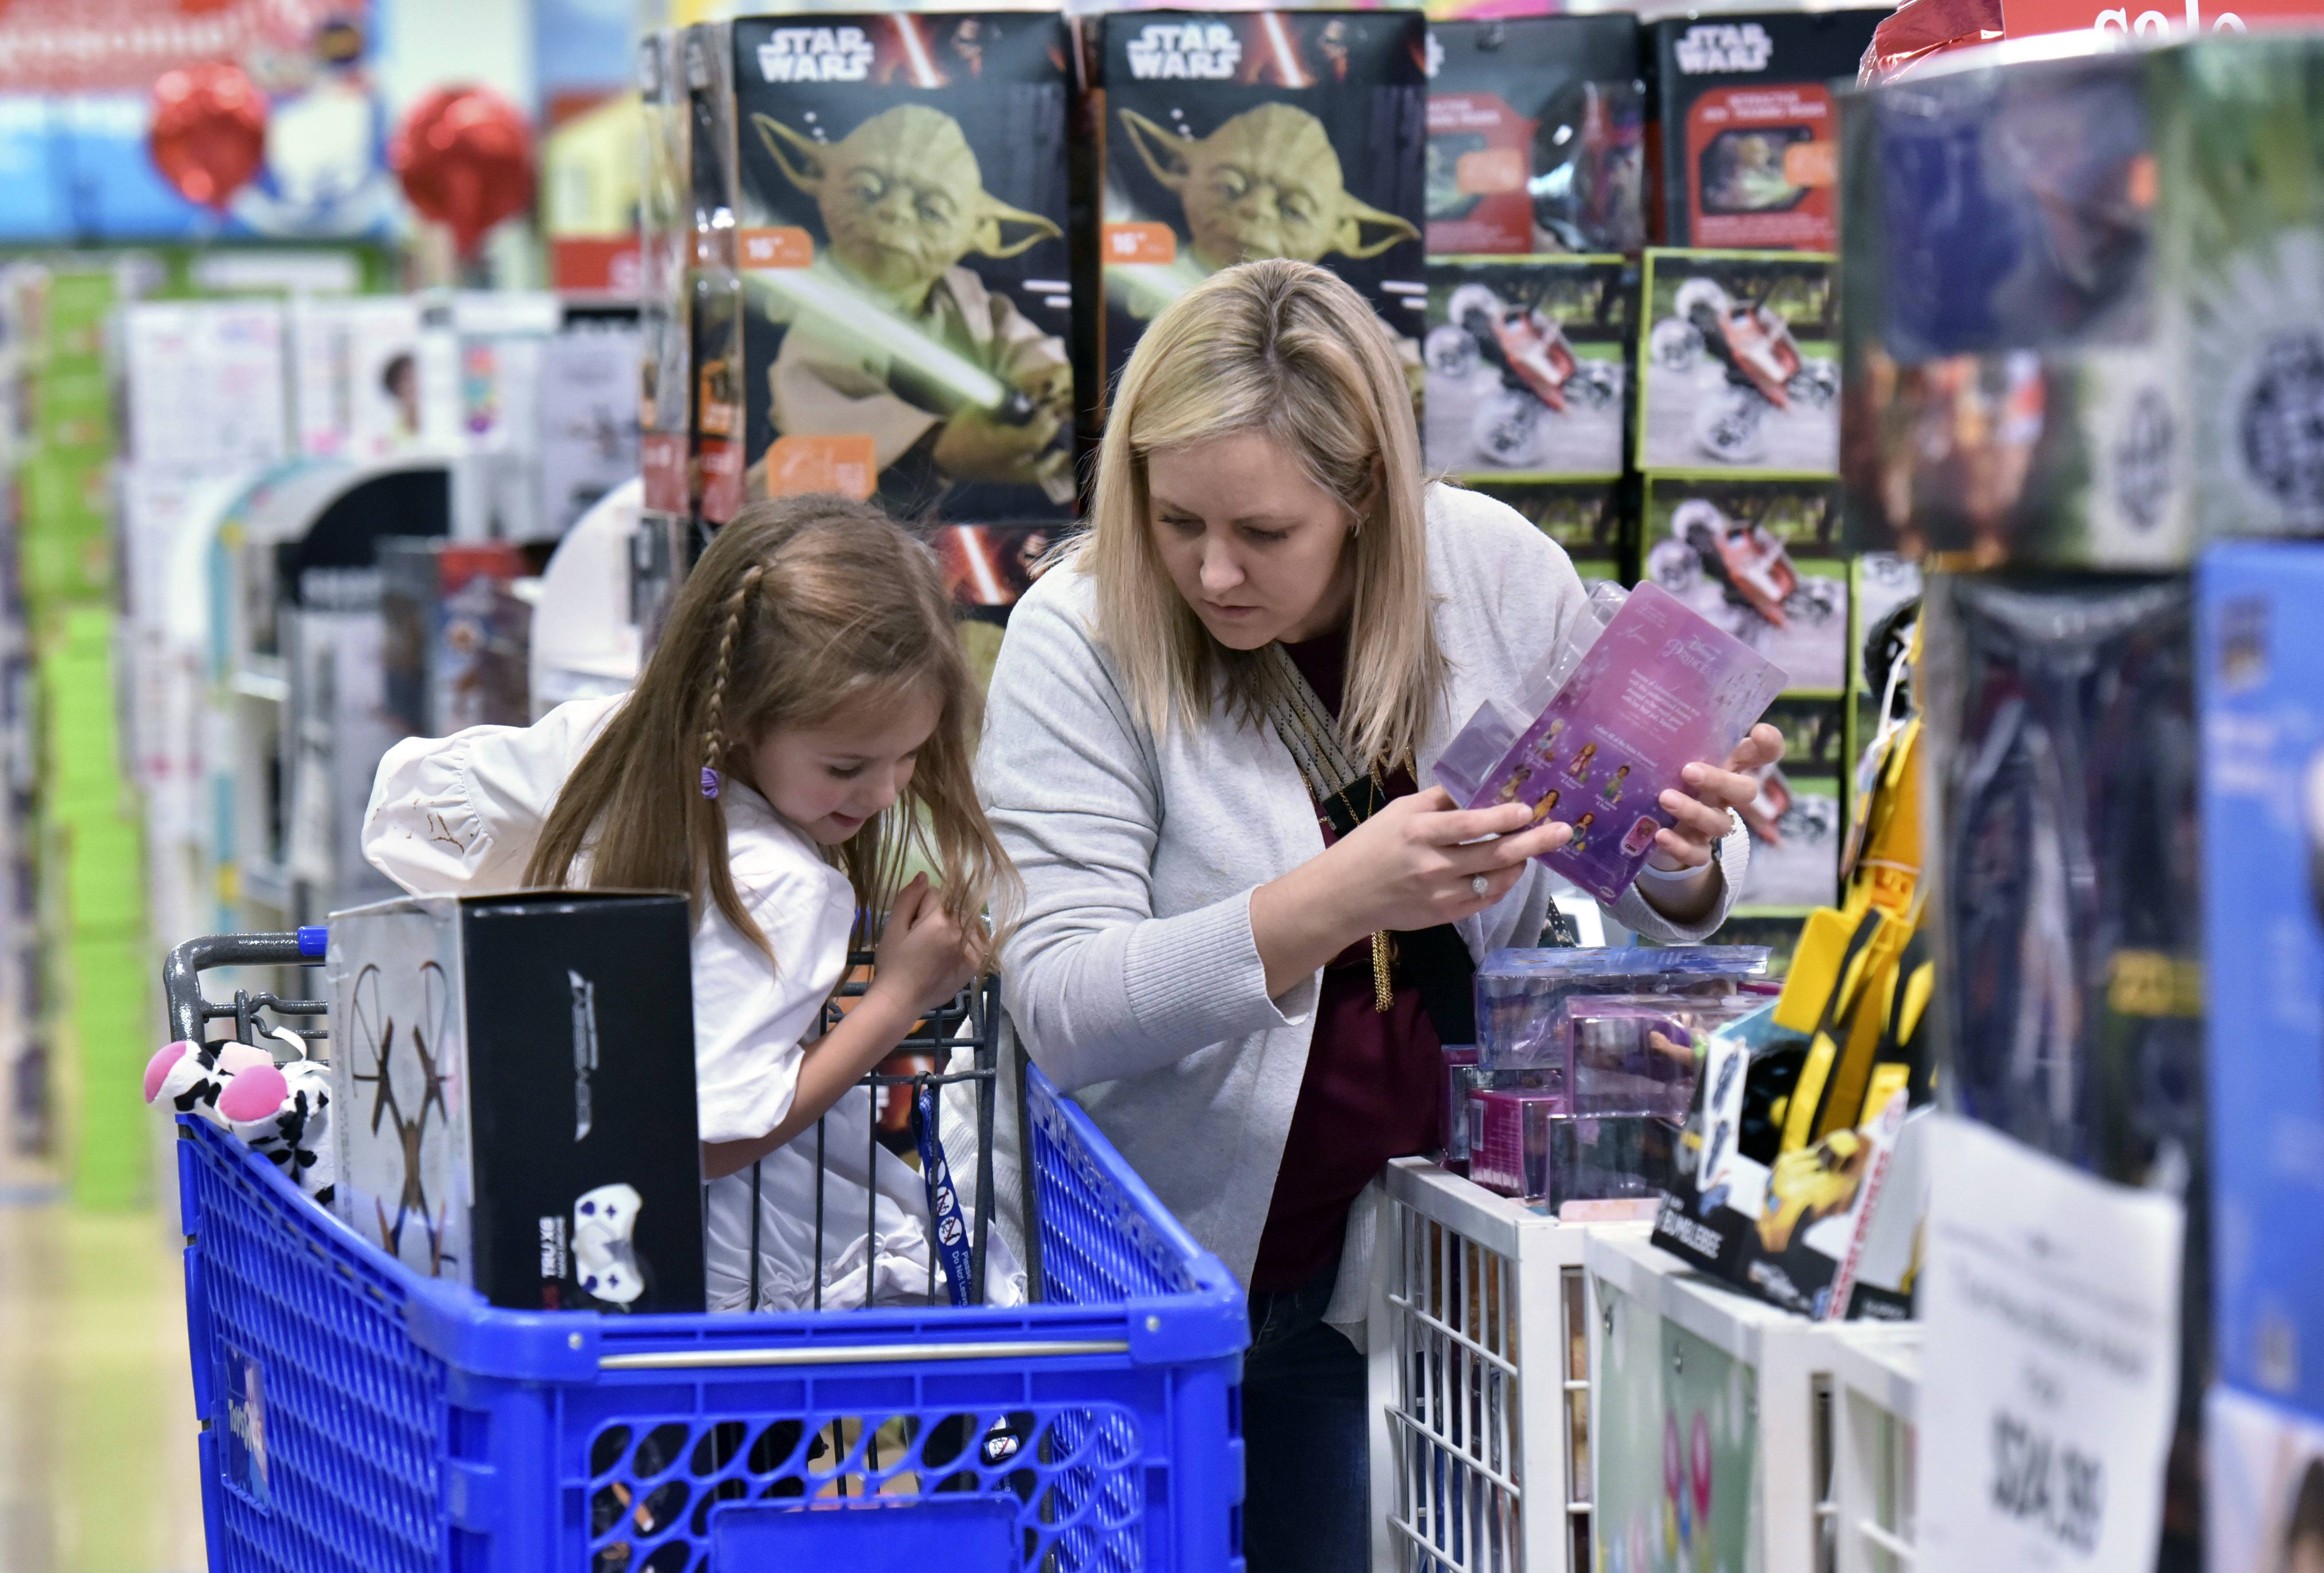 In-store doorbusters are shifting earlier, too. J.C. Penney plans to open its stores at 2 p.m. on Thanksgiving Day, while Toys R Us, Best Buy and Kohl's will follow three hours later. Walmart and Target are planning to open at 6 p.m.